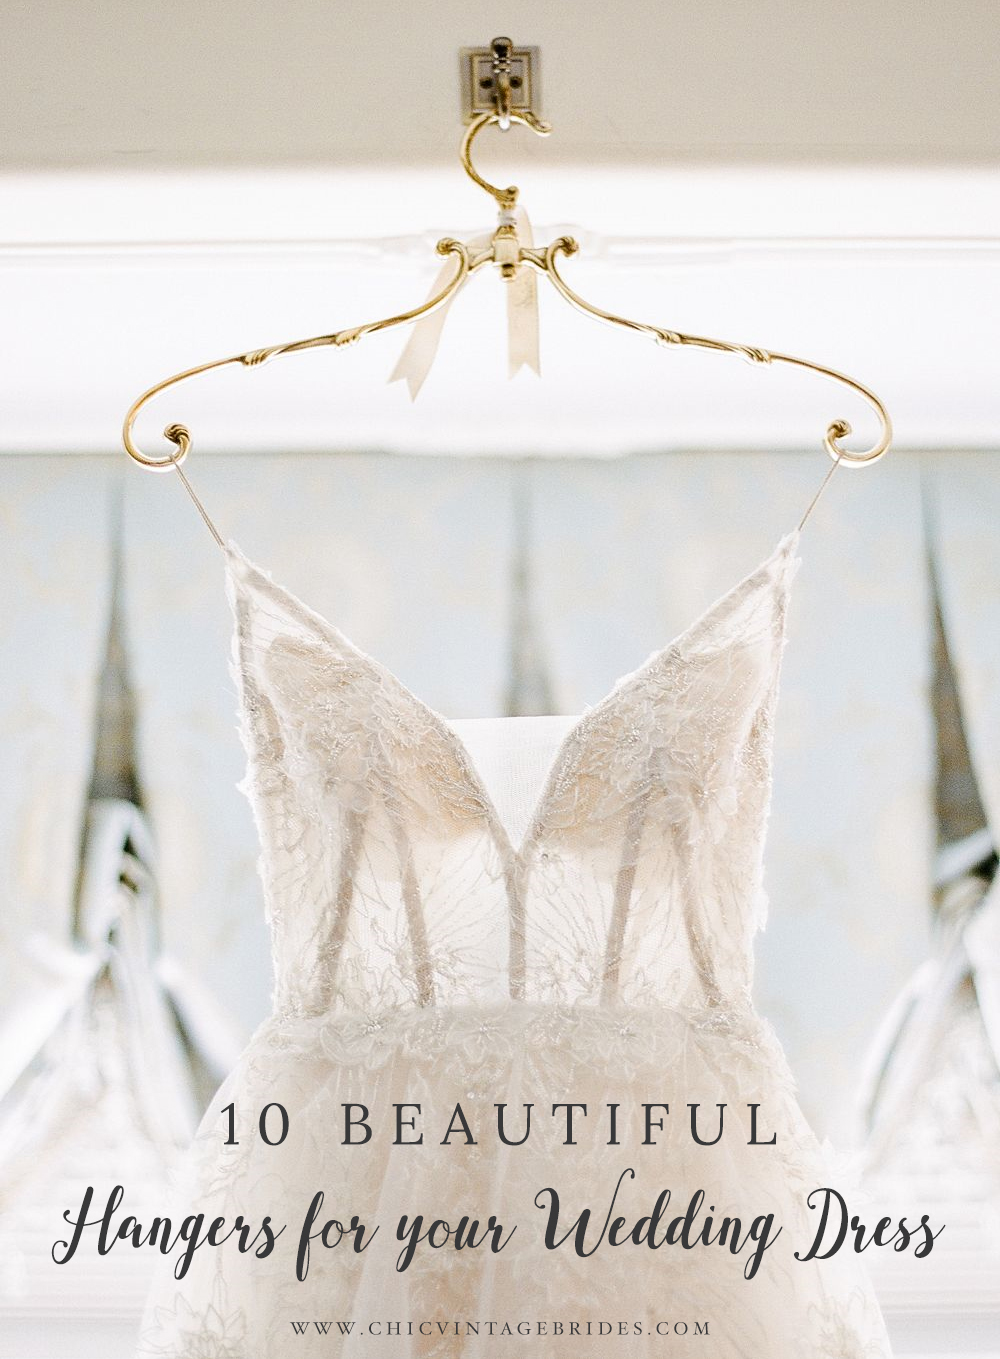 10 Beautiful Hangers for your Wedding Day